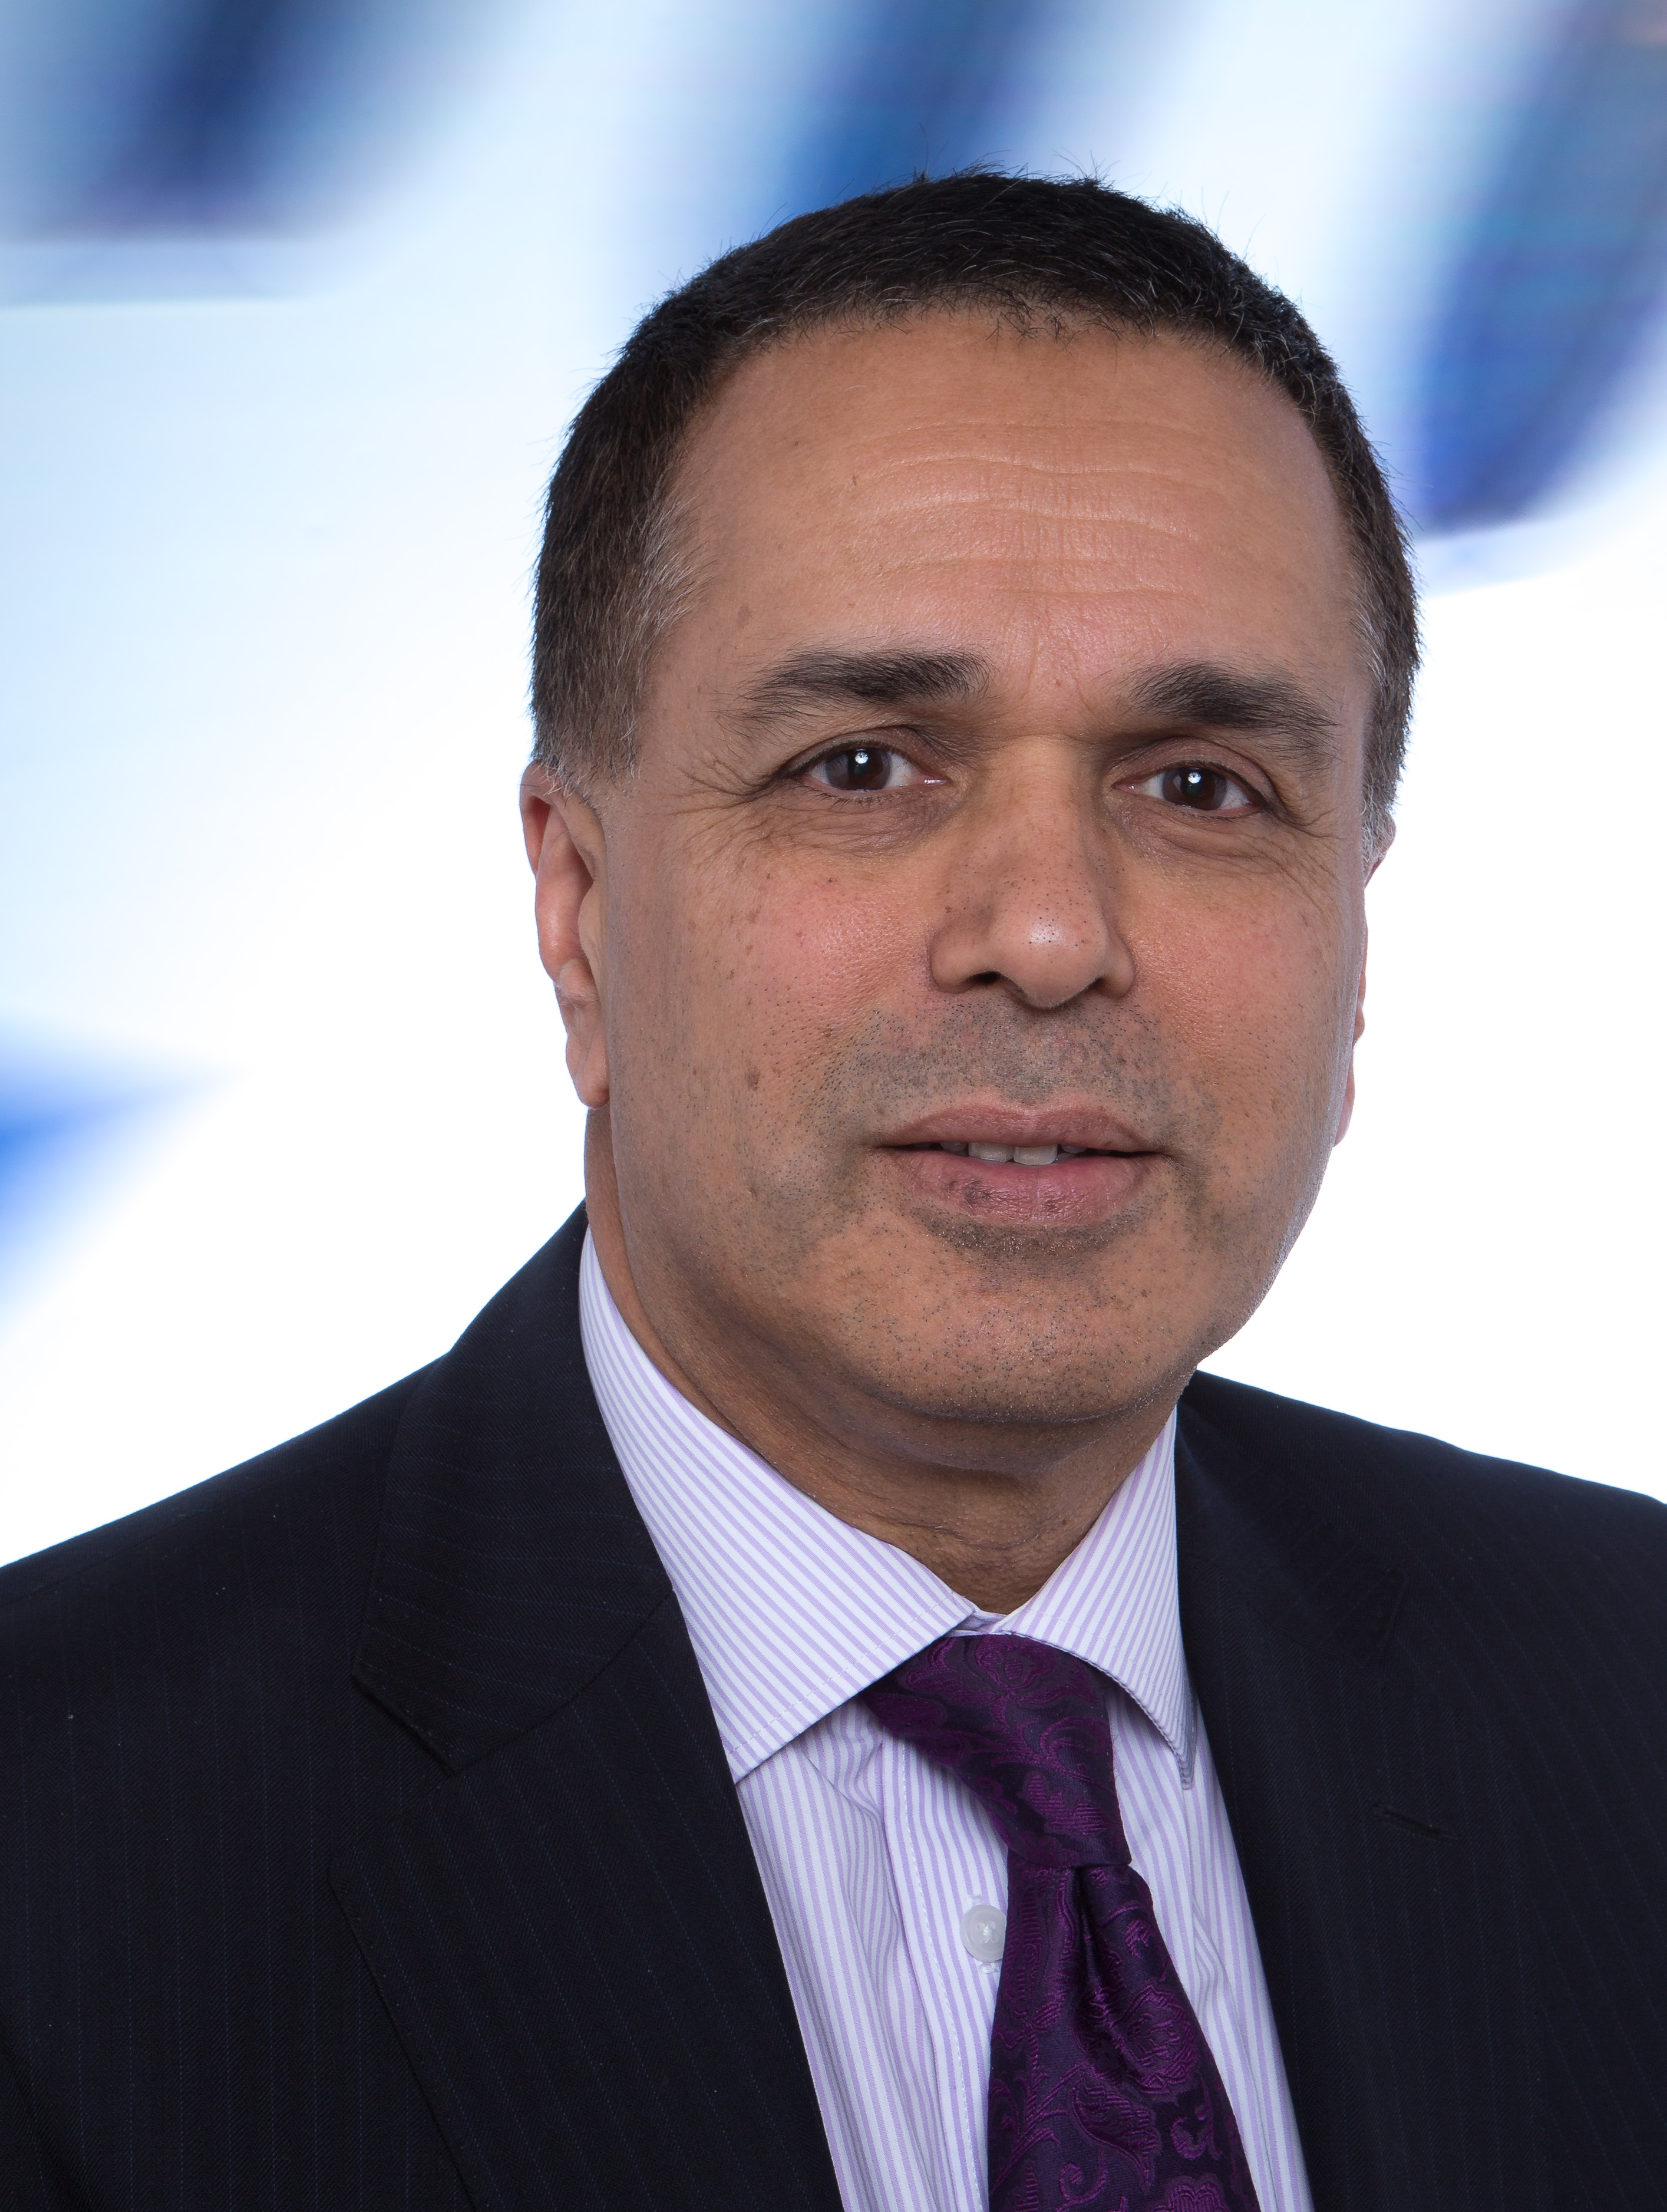 Dr Hamid Mughal, director of manufacturing, Rolls-Royce